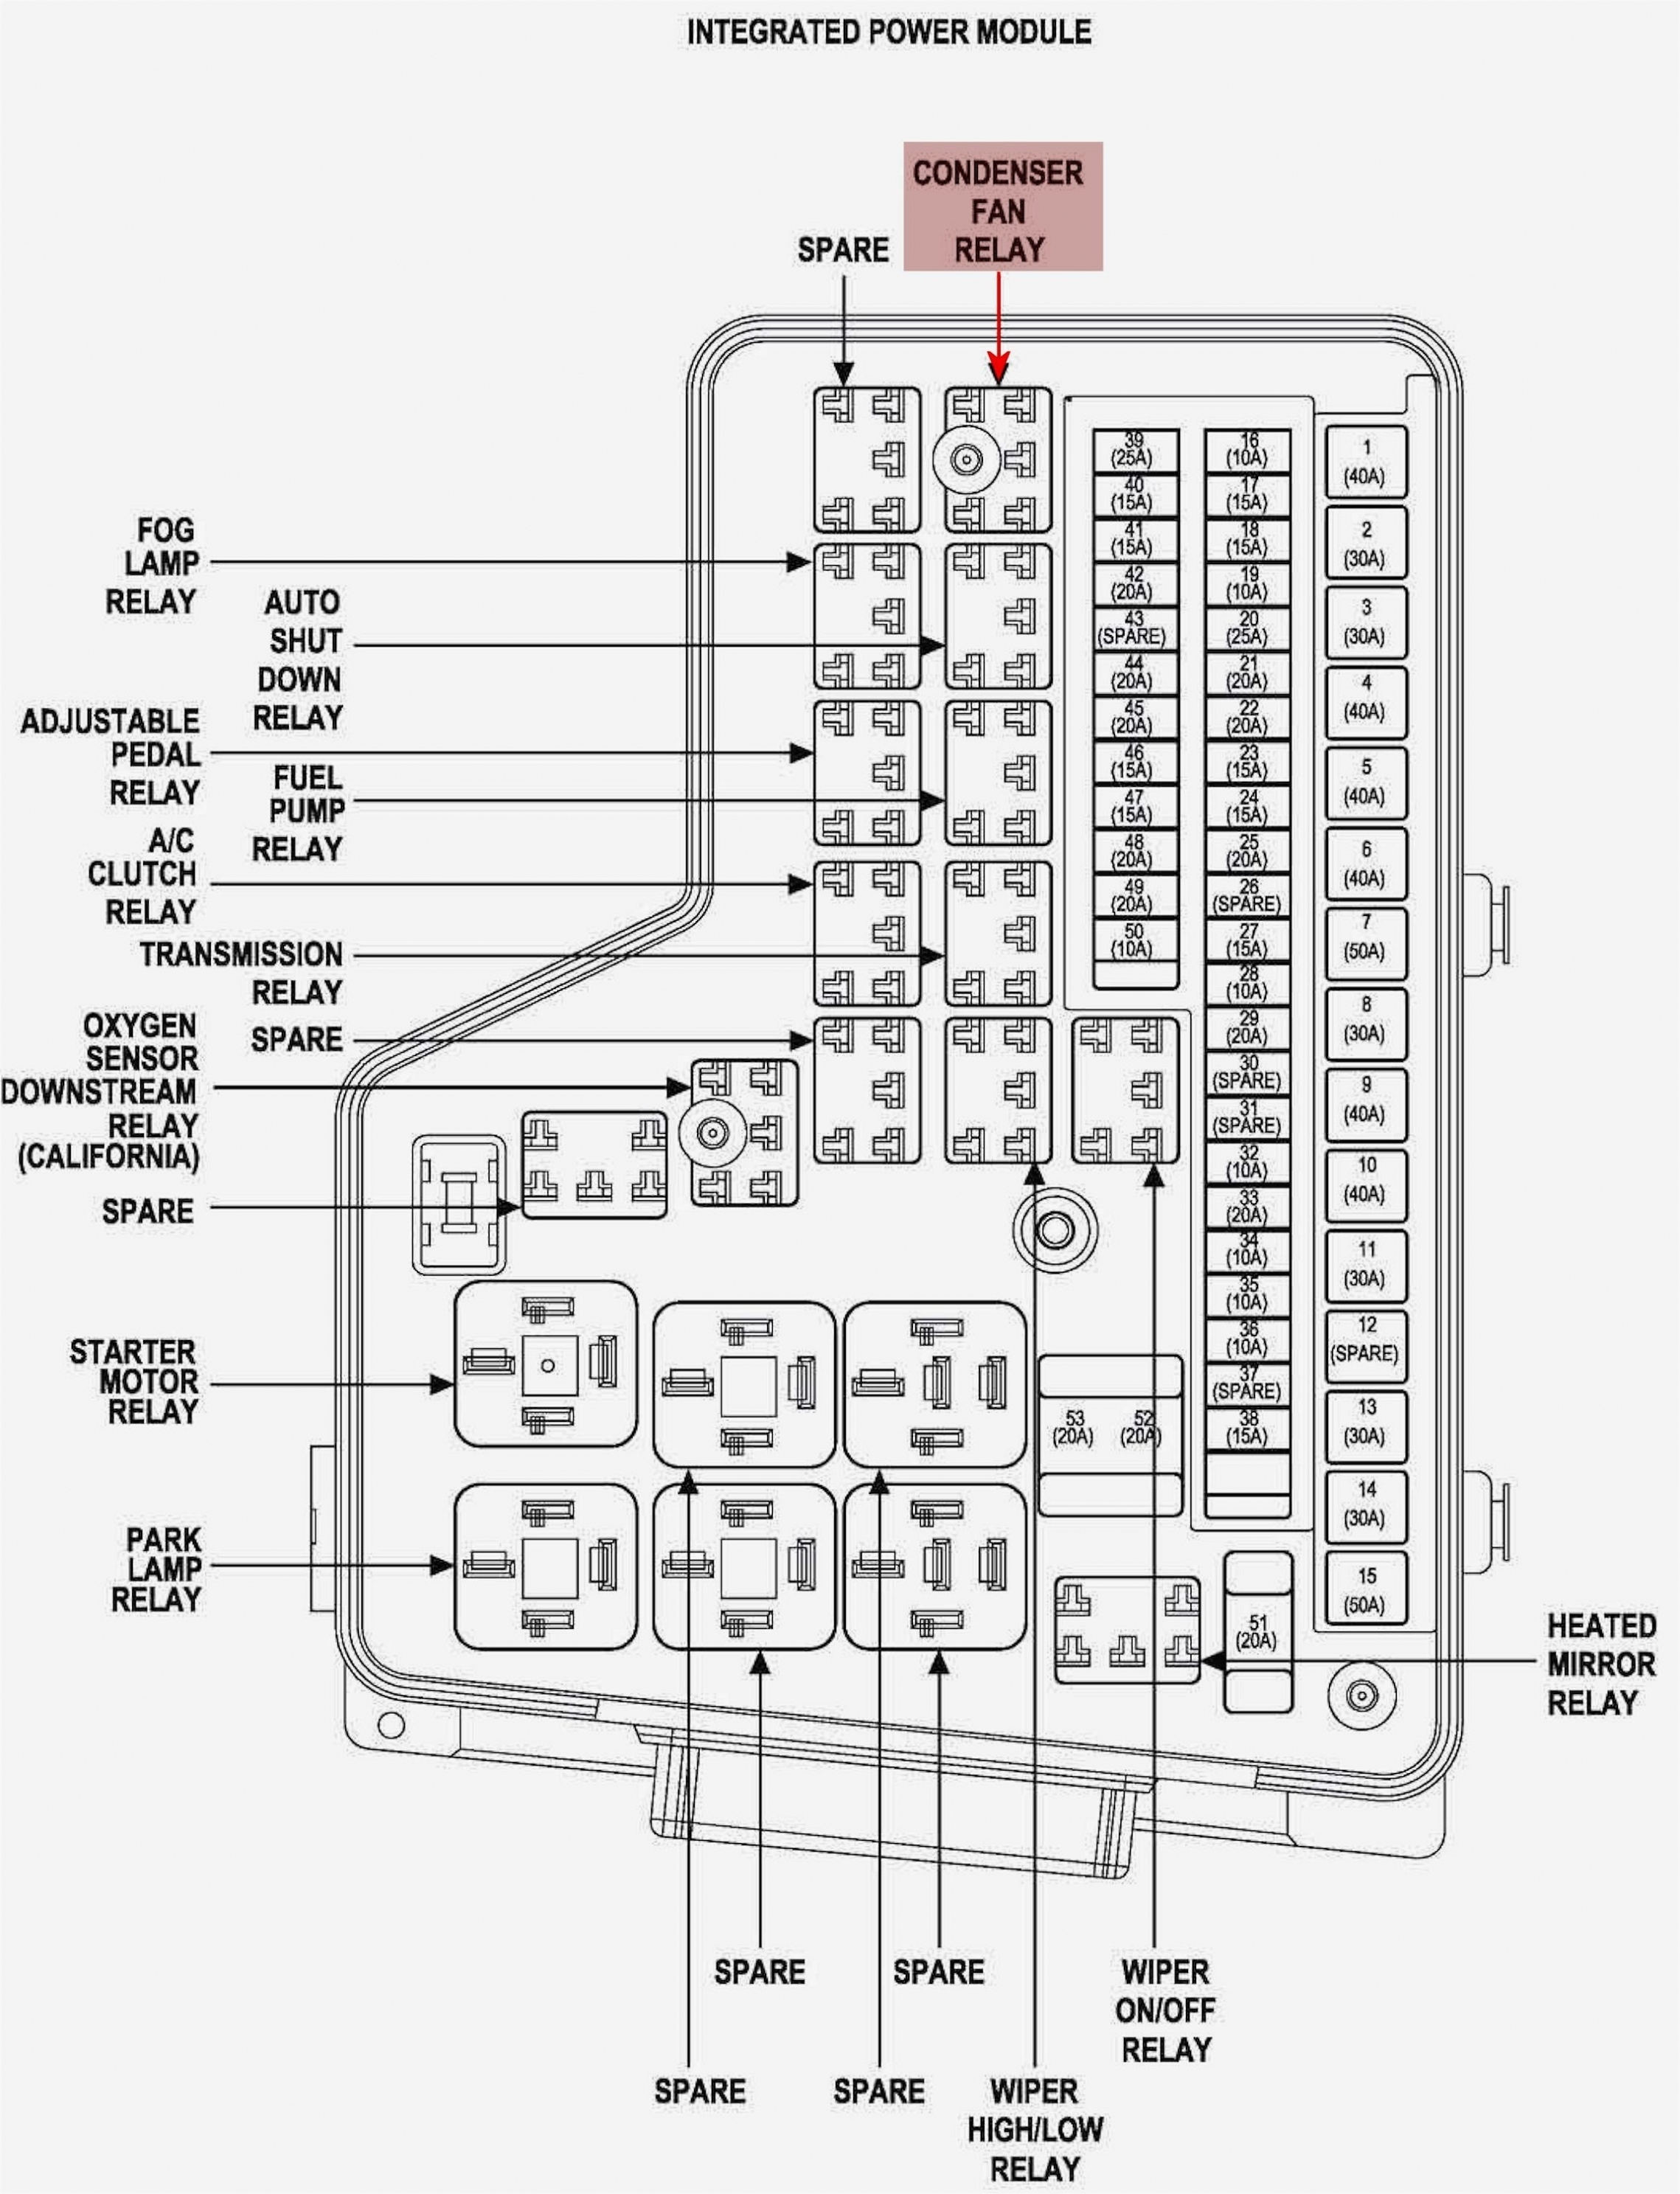 Dodge 1500 Trailer Wiring Diagram. Dodge 2500 Trailer